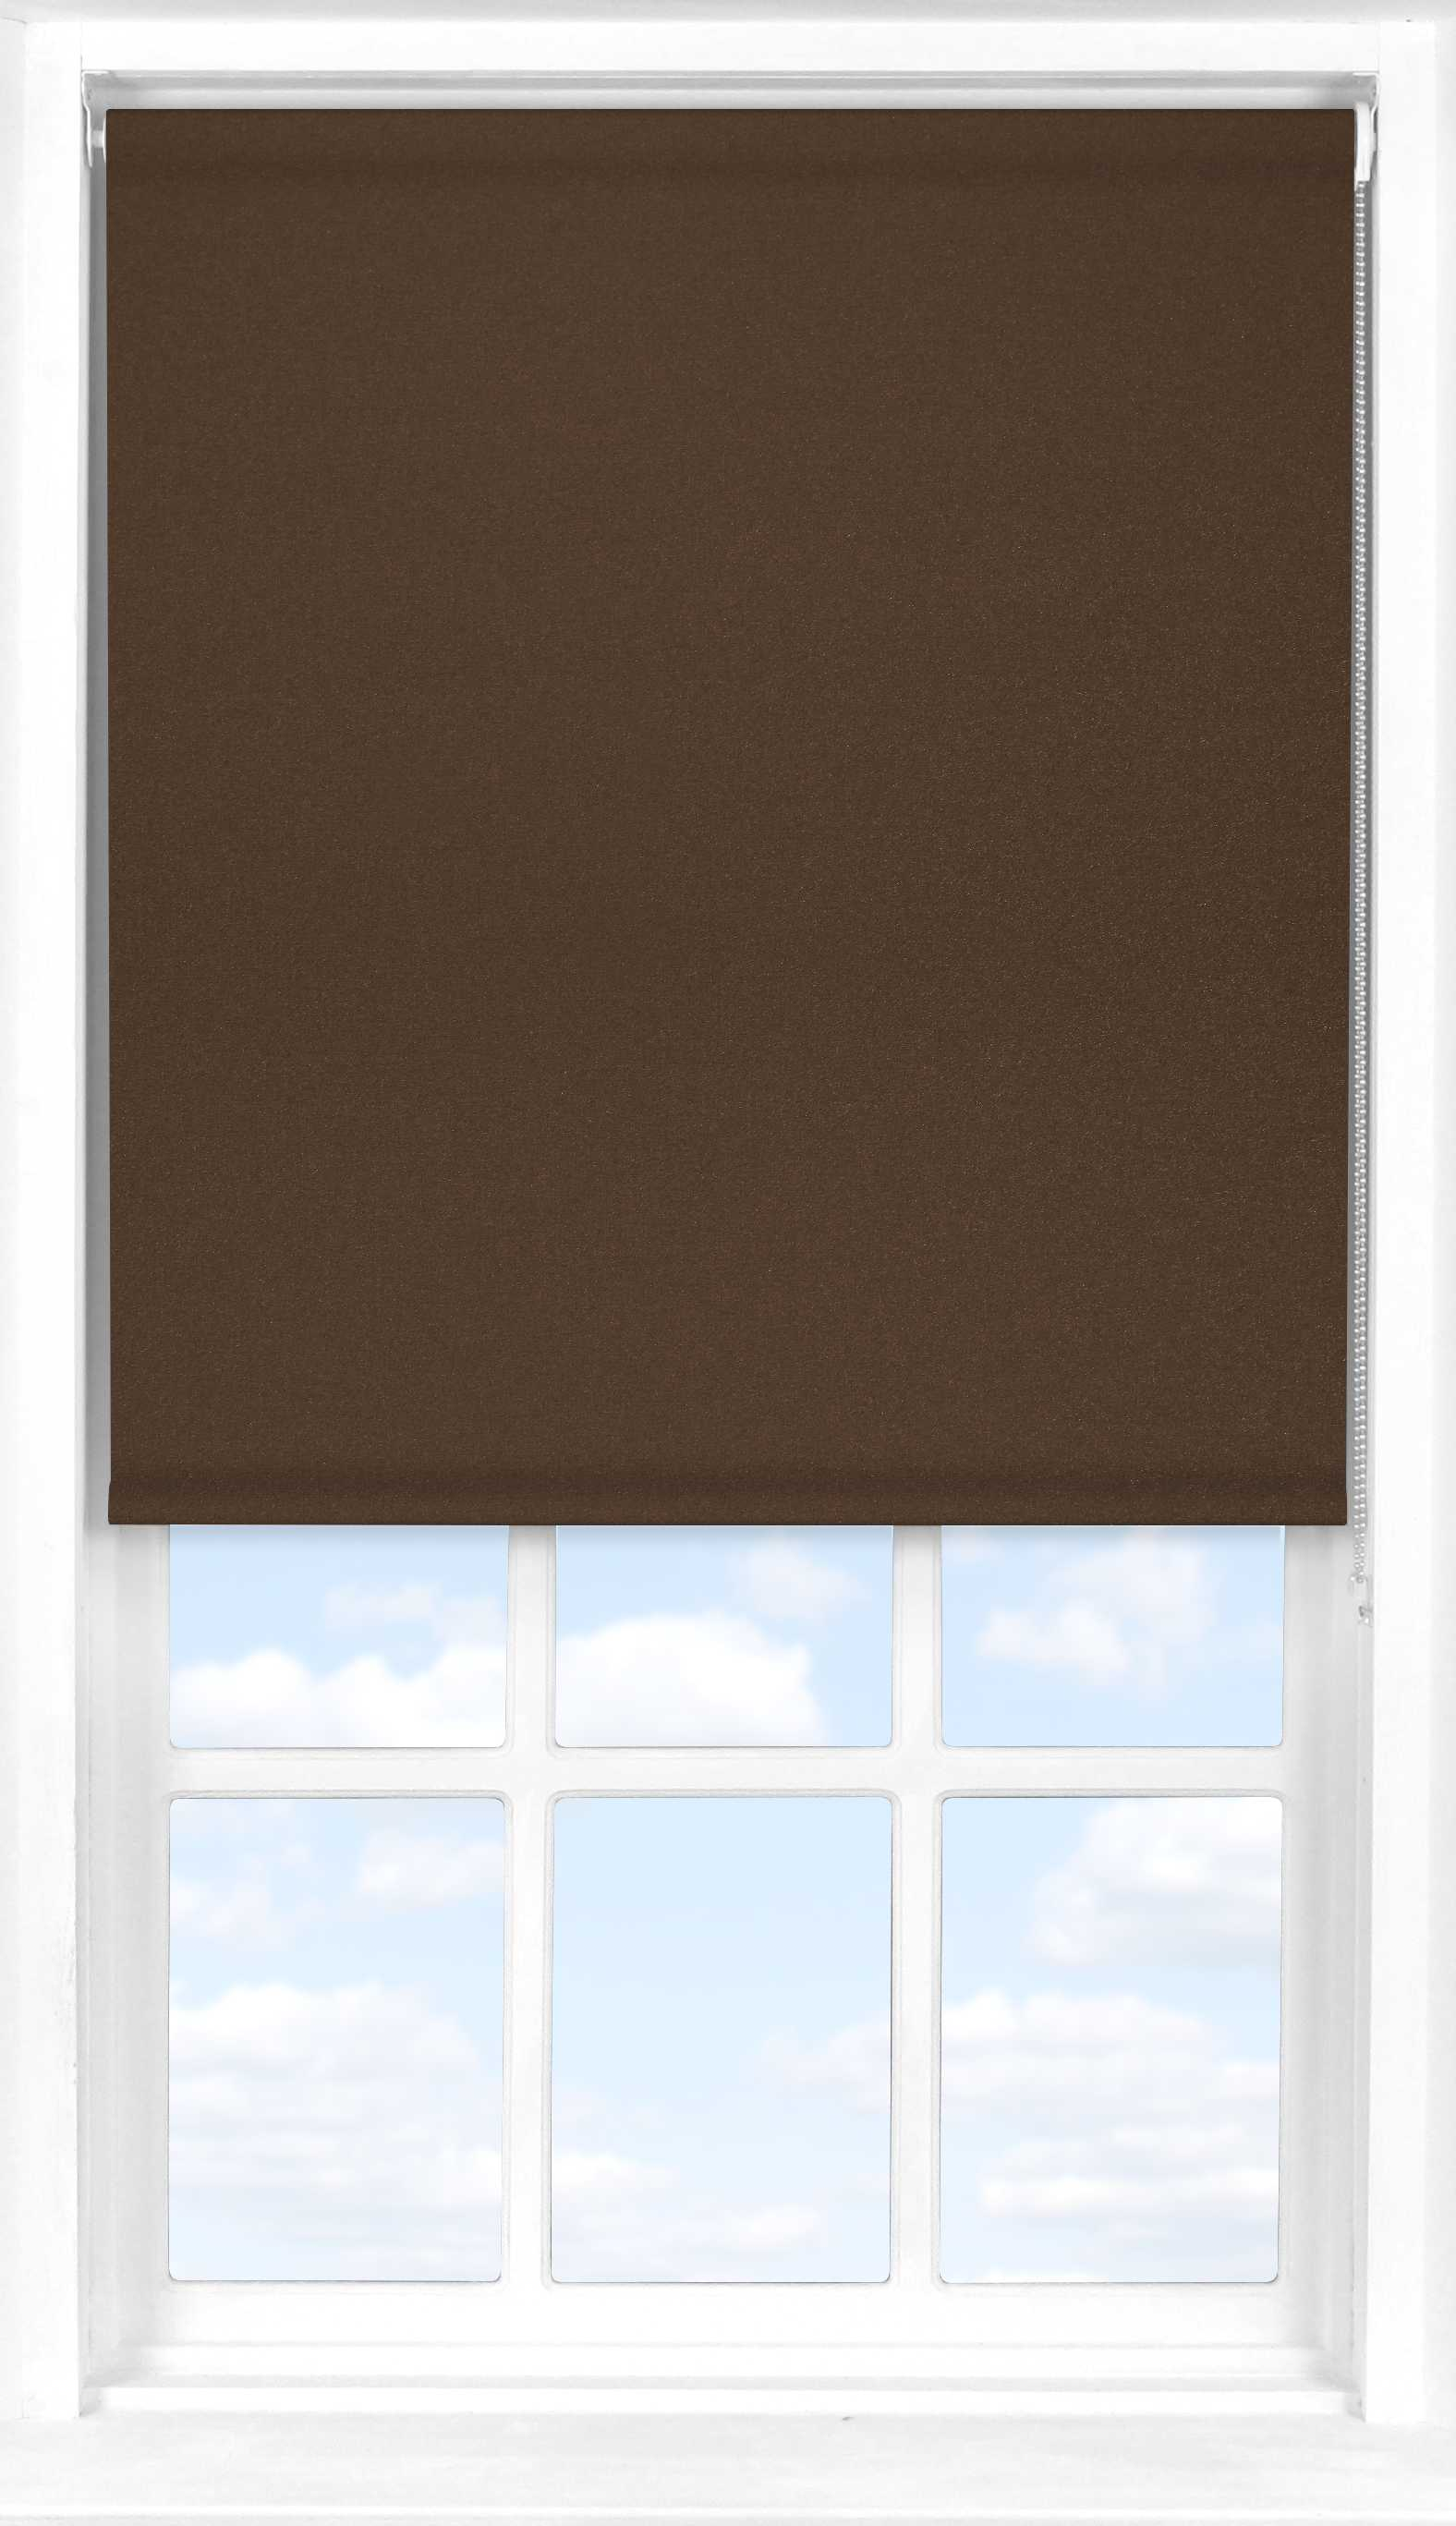 Roller Blind in Rich Chestnut Translucent